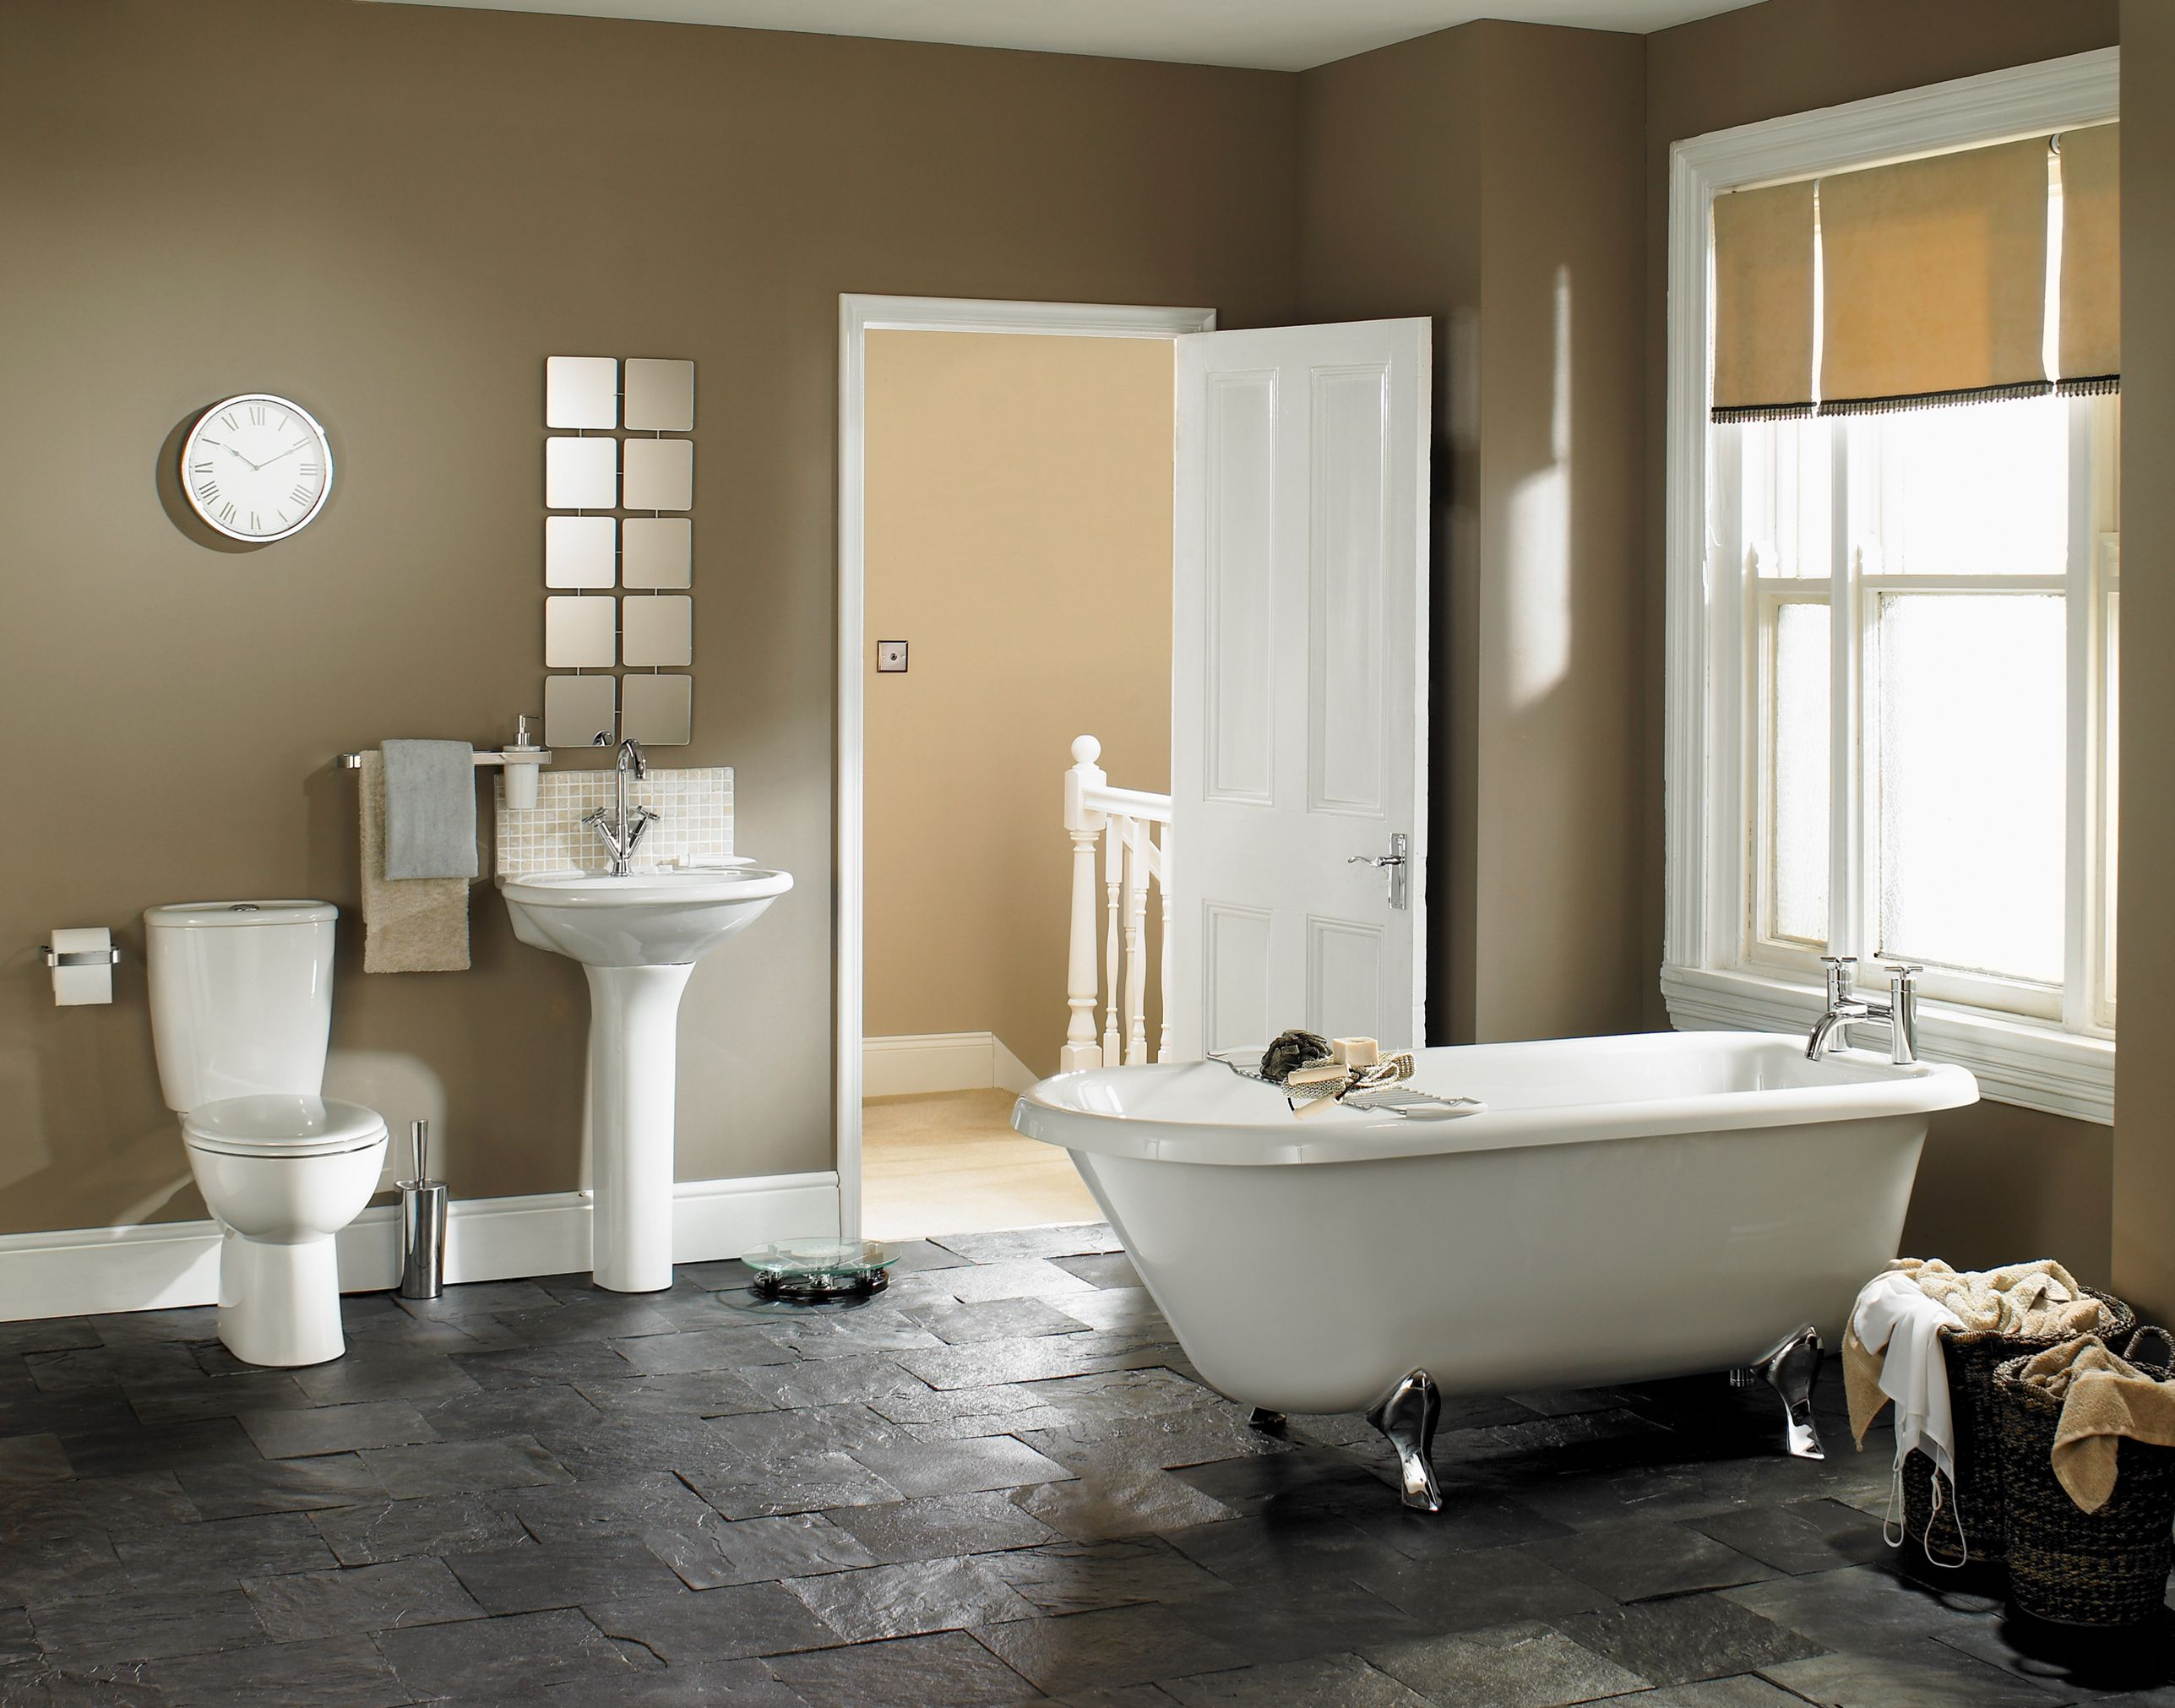 Four Types Of Toilets How To Install A Toilet Plumbing Diagram Help